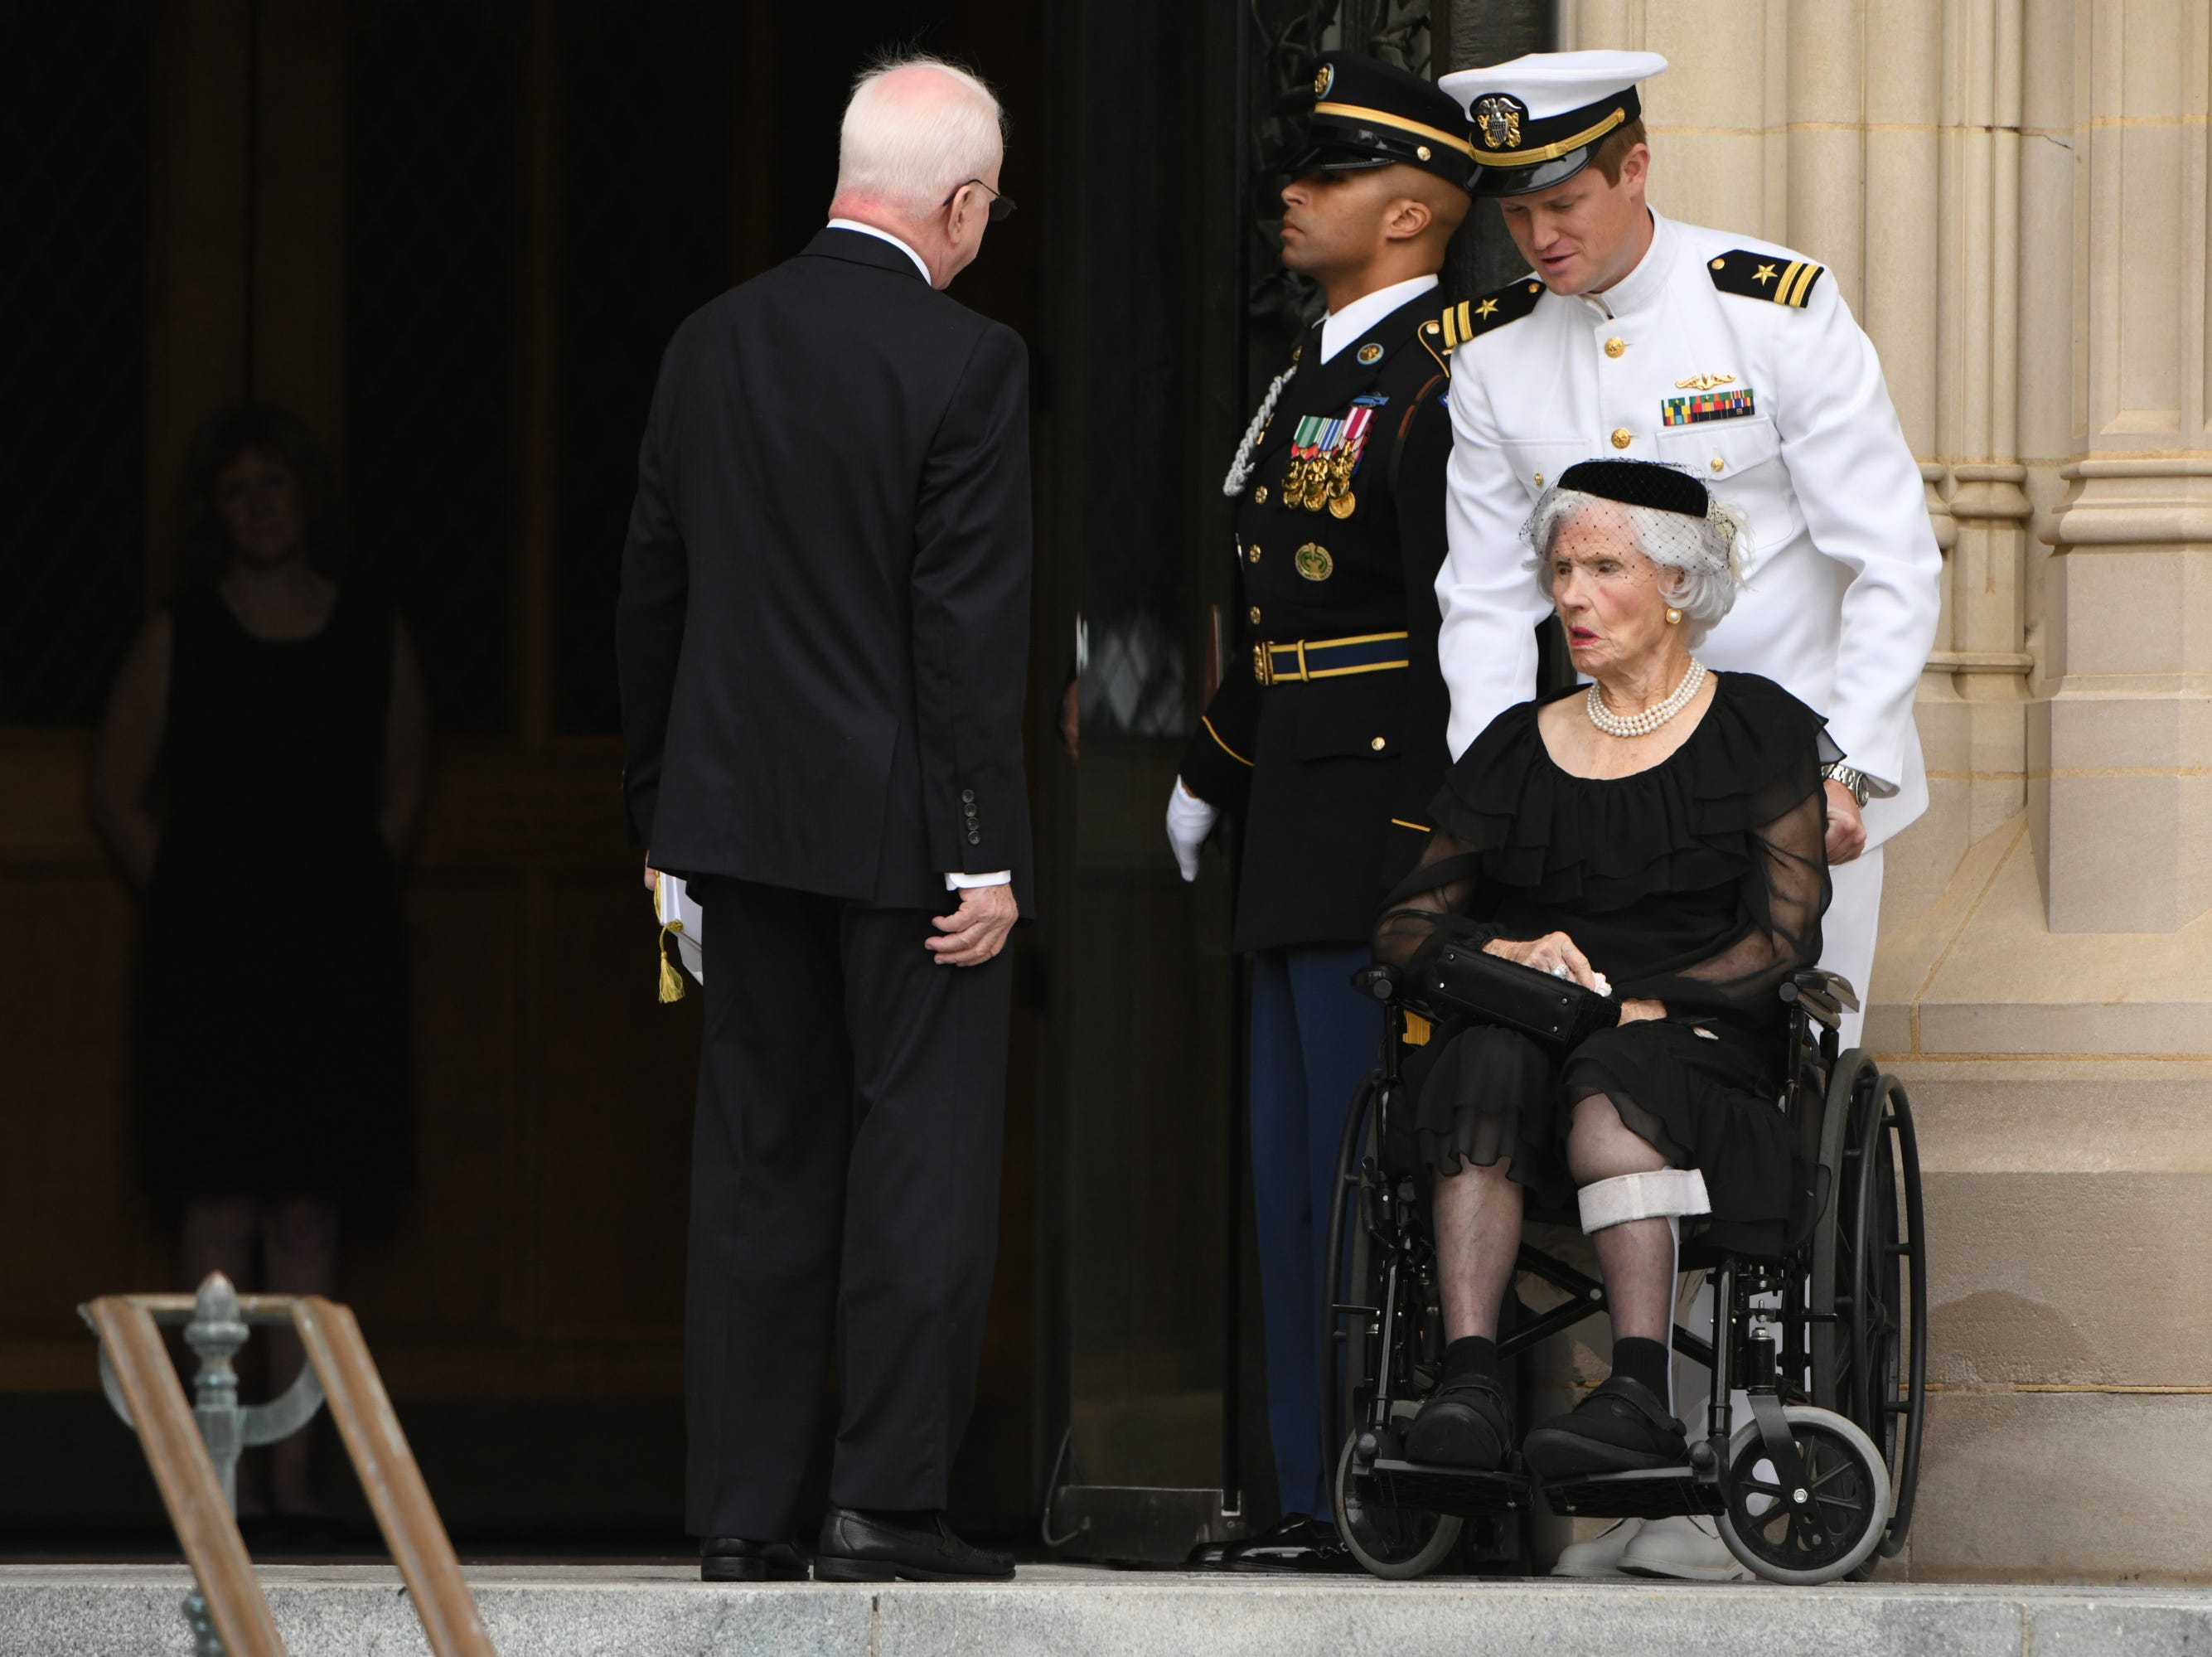 John McCain's mother Roberta McCain leaves the memorial service for her son at the National Cathedral.